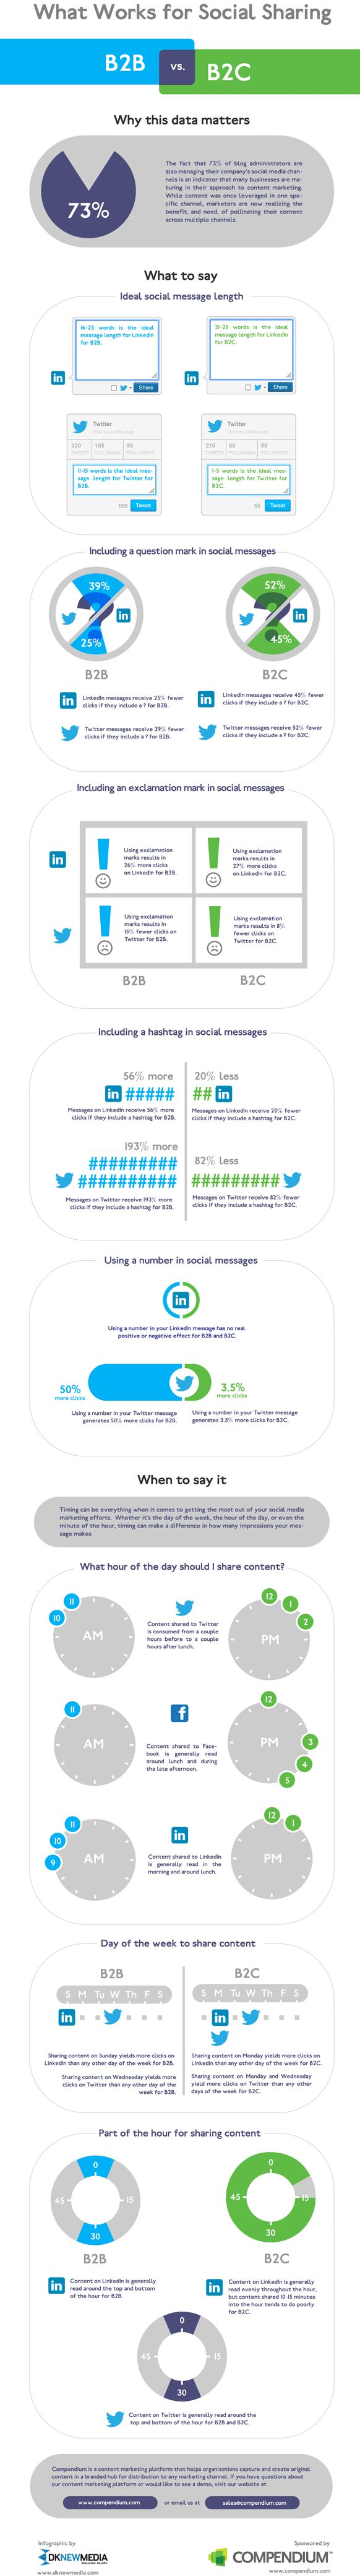 #DidYouknow 45% less clicks with QUESTIONMARKS and 27% more clicks with EXCLAMATIONMARKS on #B2C #LinkedIn postings